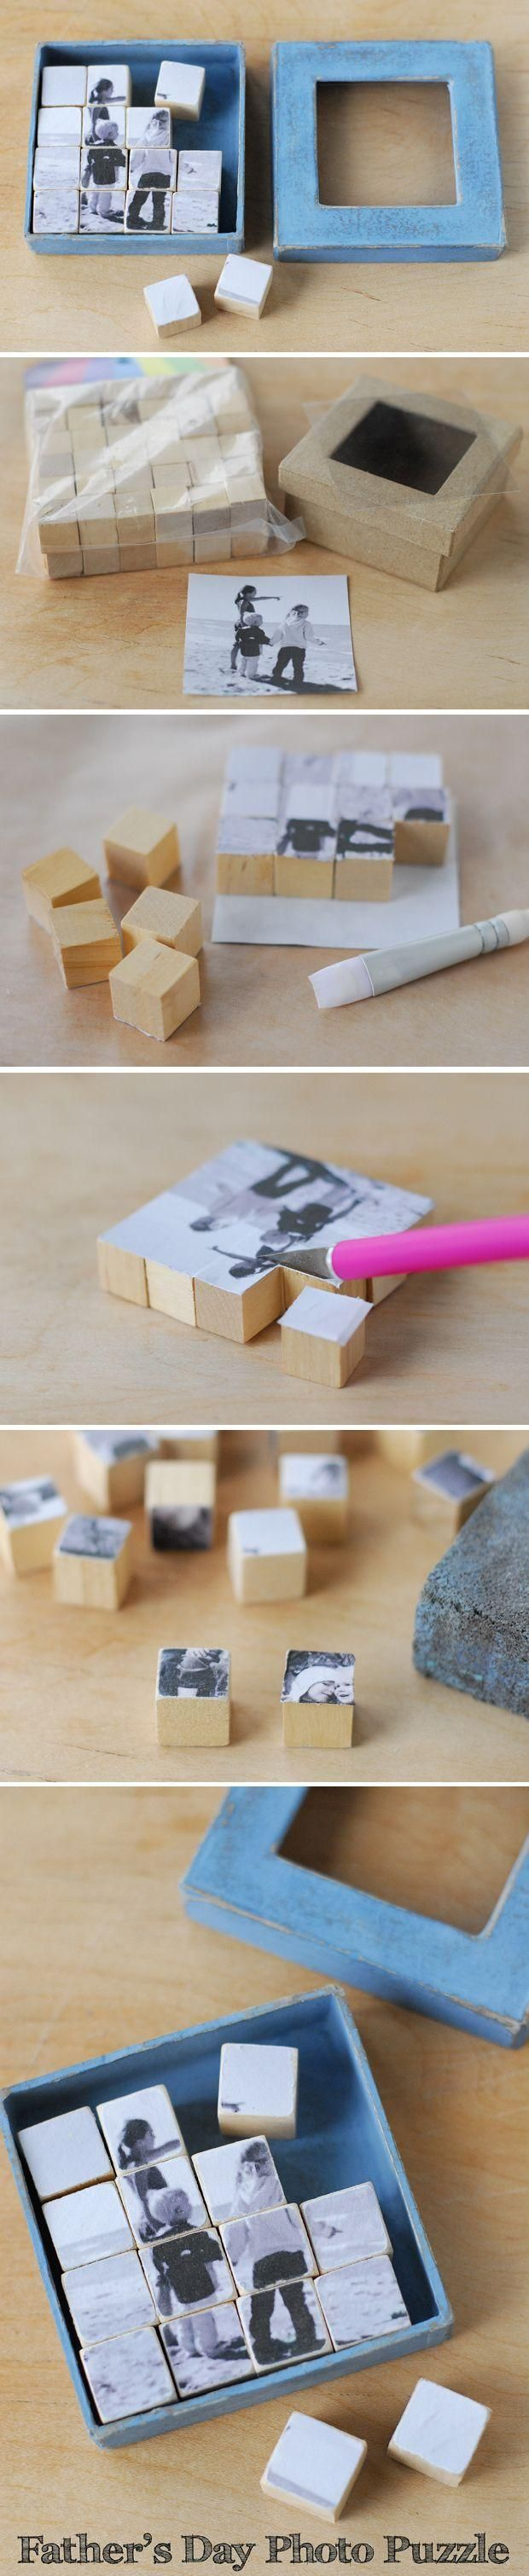 Diy photo block puzzle